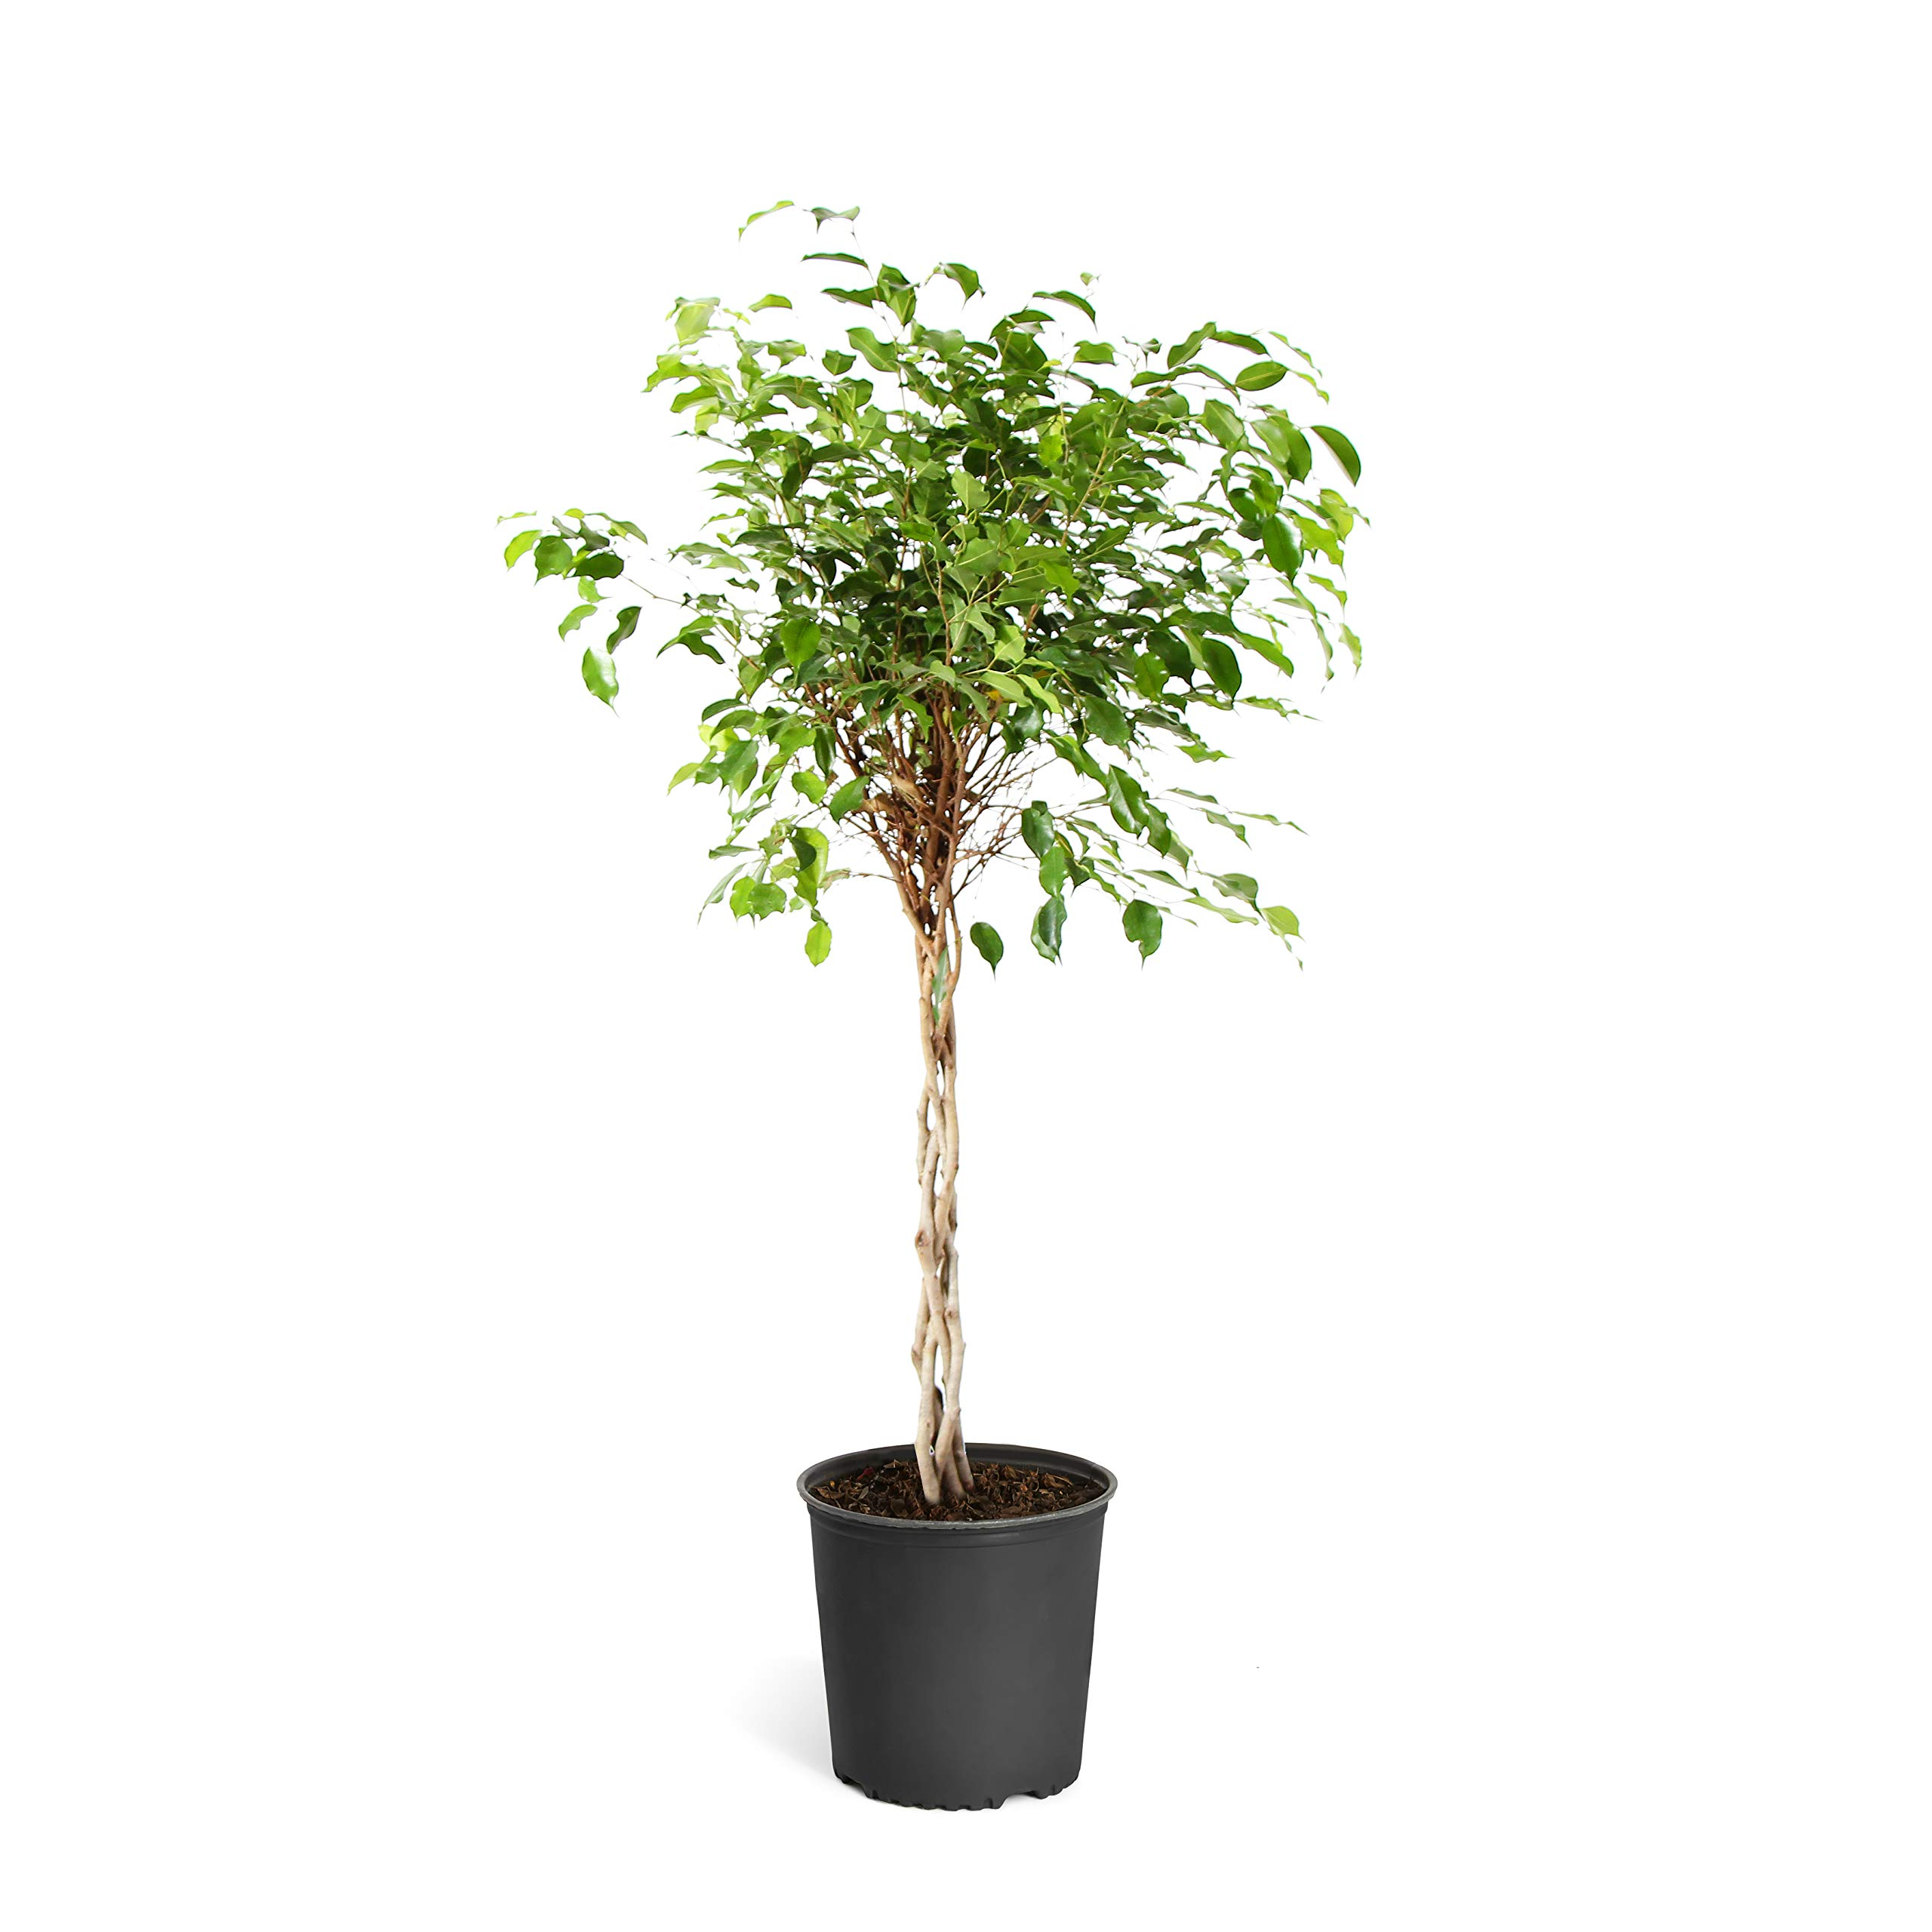 Brighter Blooms Benjamina Ficus Tree, 2-3 Ft. - The Easiest to Grow Ficus | Indoors or Outside | Low Maintenance | No Shipping to AZ by Brighter Blooms